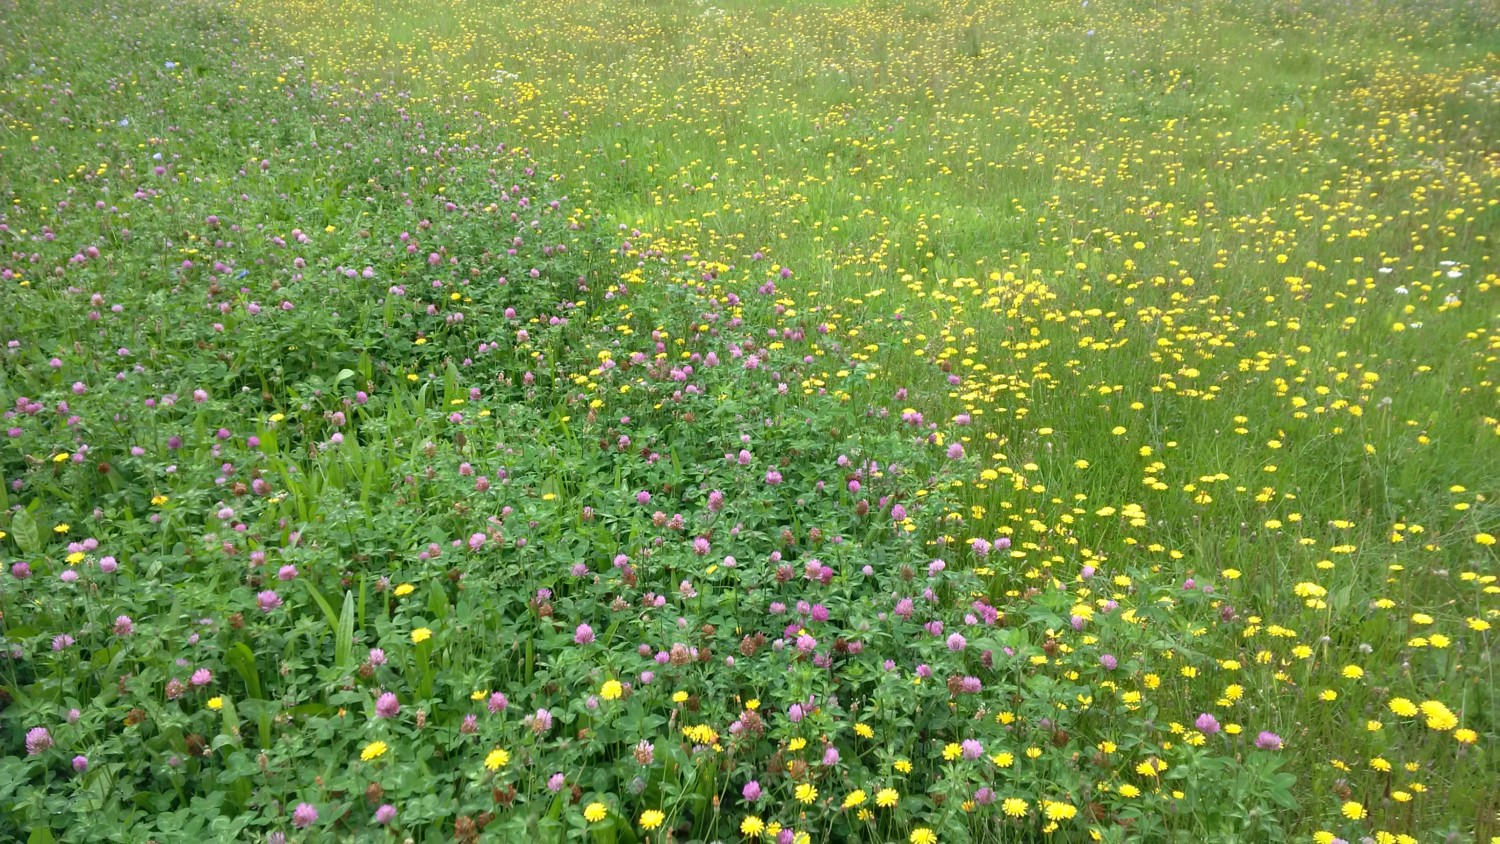 Wesco sells grass seed, lawn seed, pasture seed and clover seed